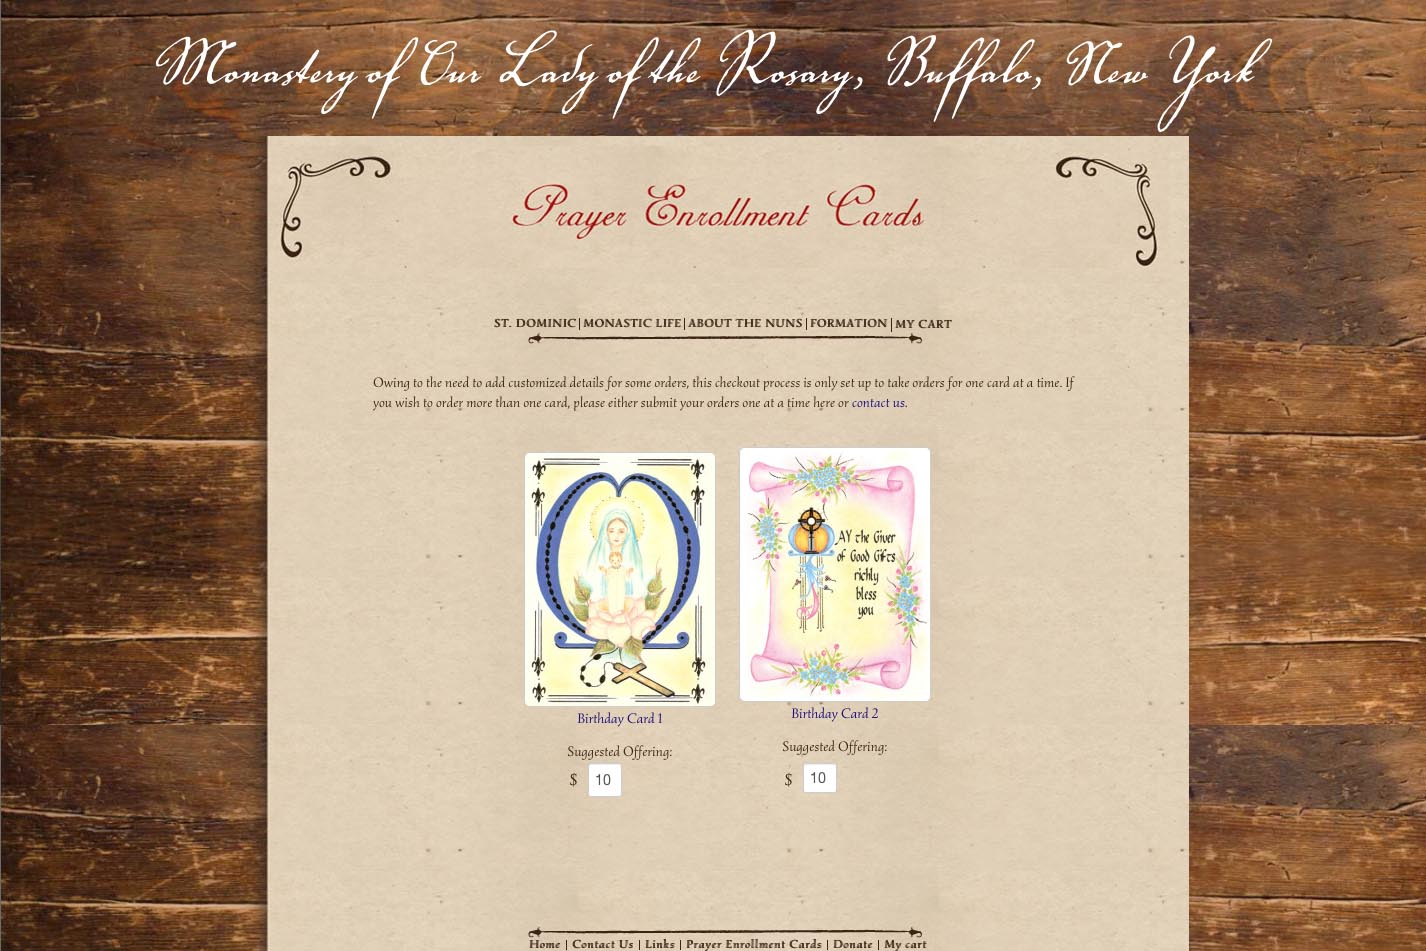 web design for a monastery - birthday cards landing page